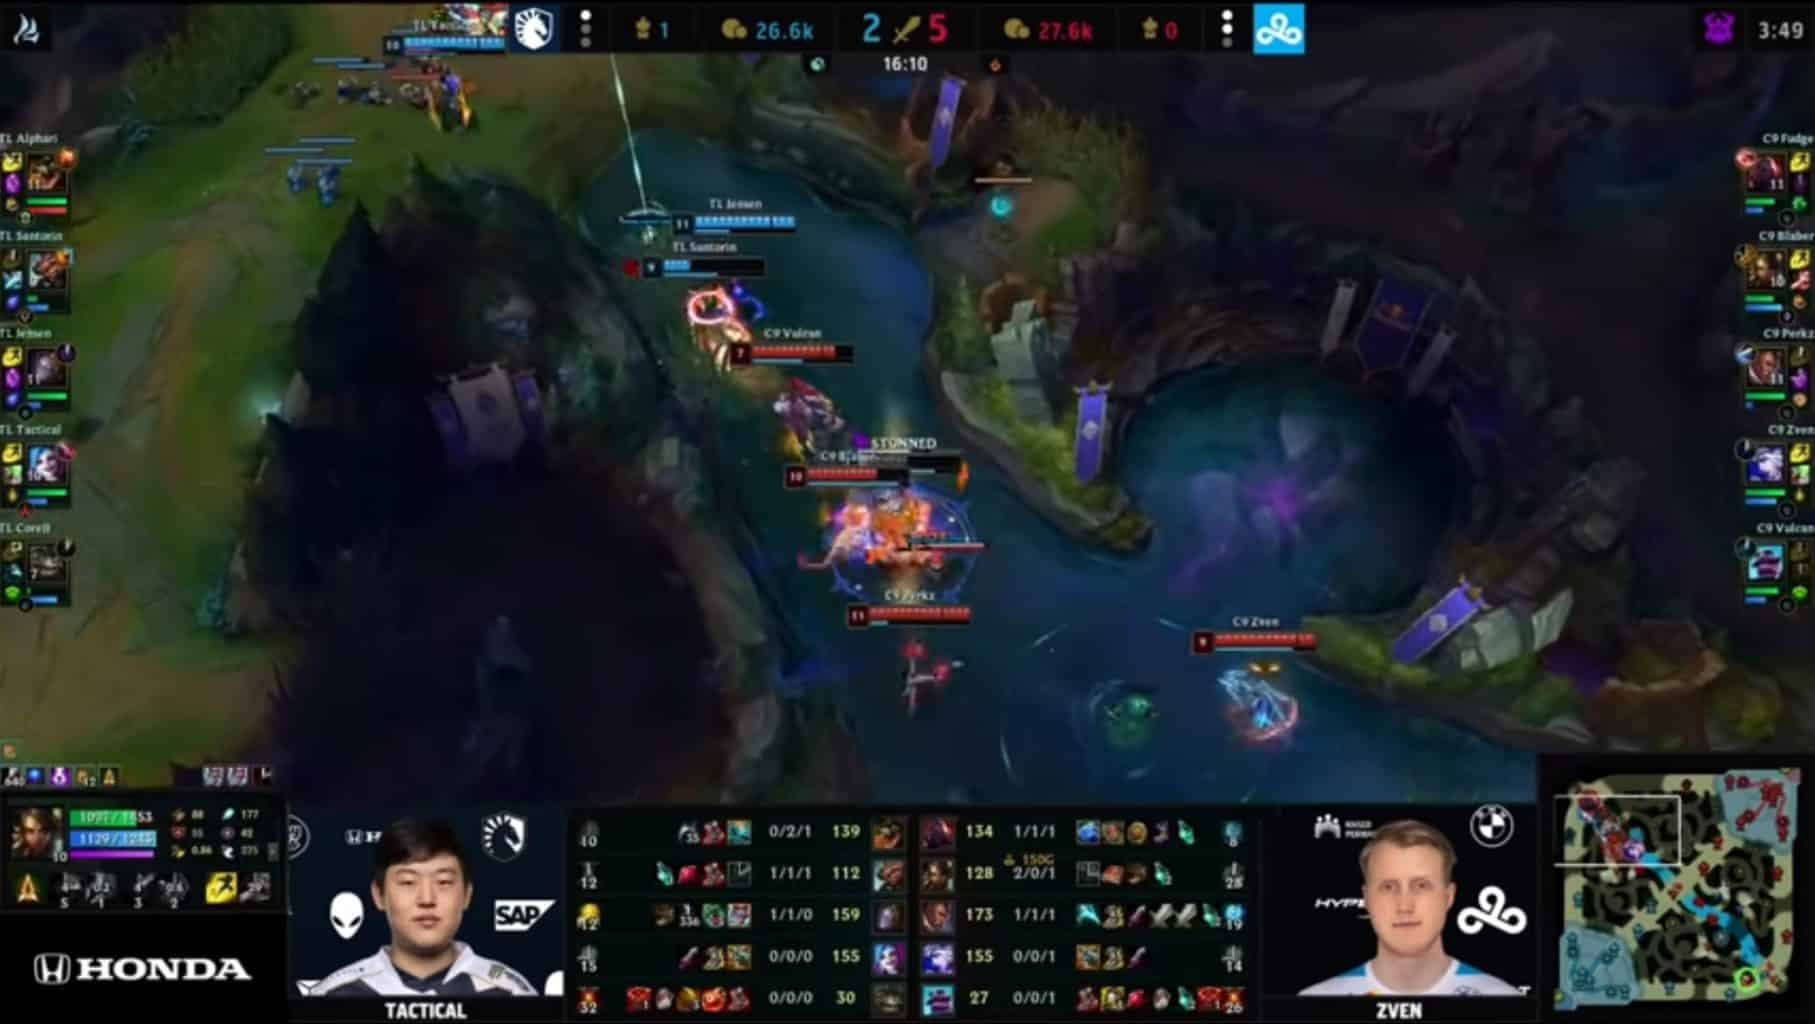 Cloud9 turned on Team Liquid after taking the Rift Herald in Game 4.